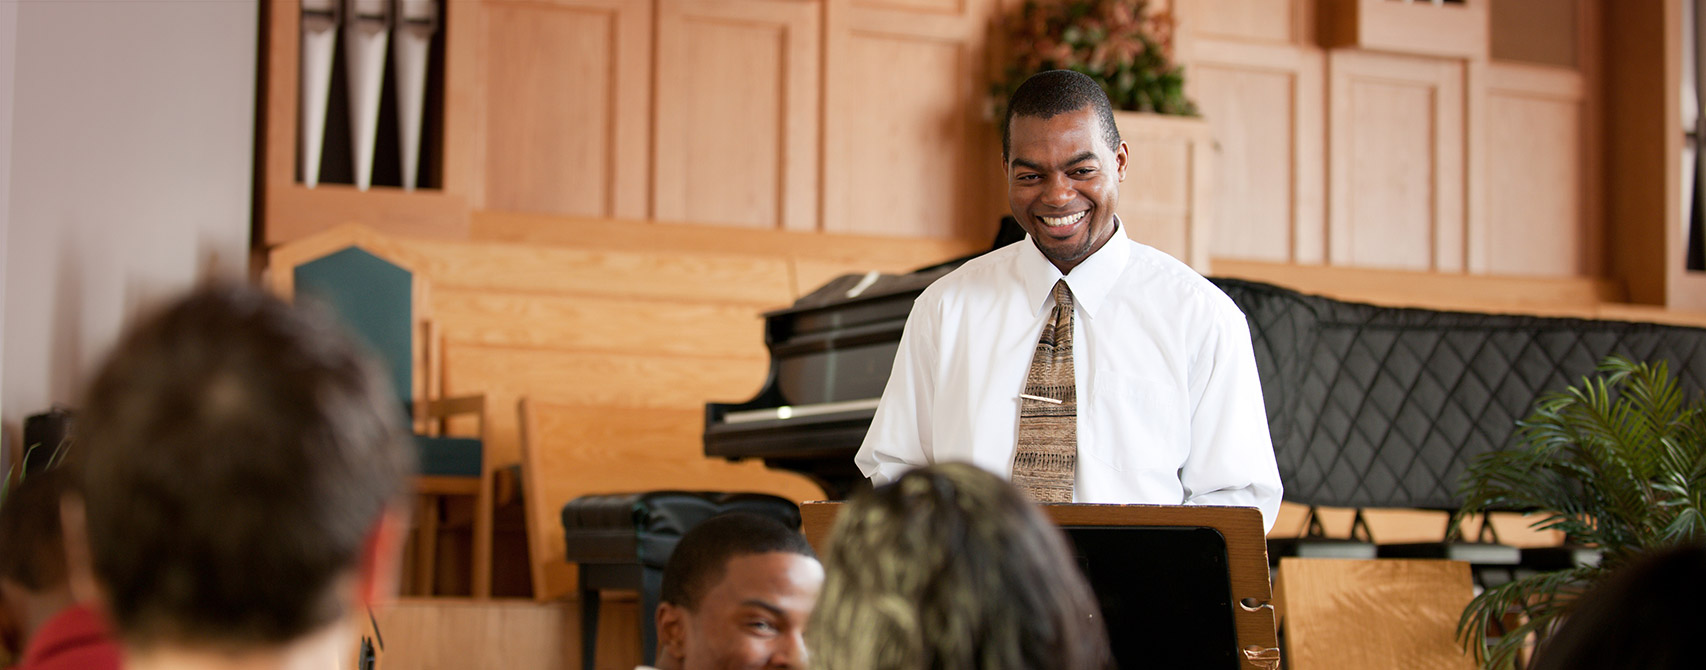 Minister standing at podium on stage in a church shares a smile with his parishioners.